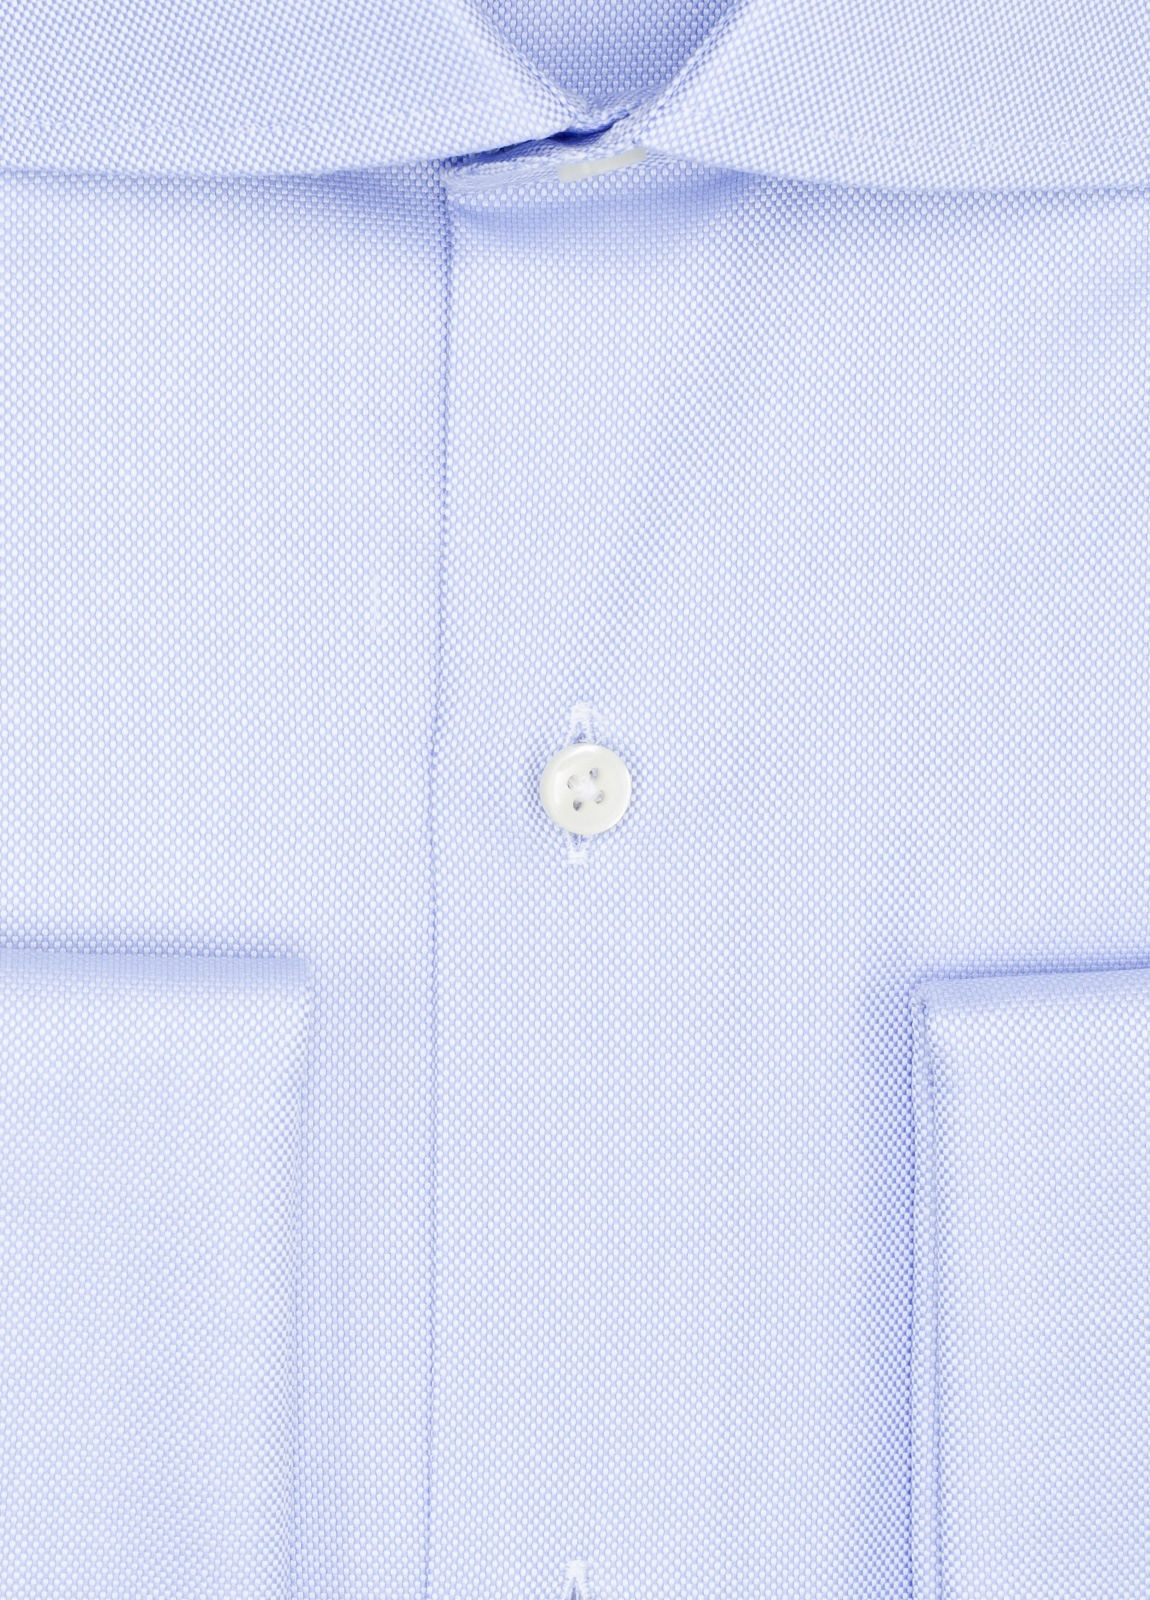 Camisa Formal Wear REGULAR FIT cuello italiano modelo TAILORED NAPOLI diseño oxford color azul, 100% Algodón. - Ítem1